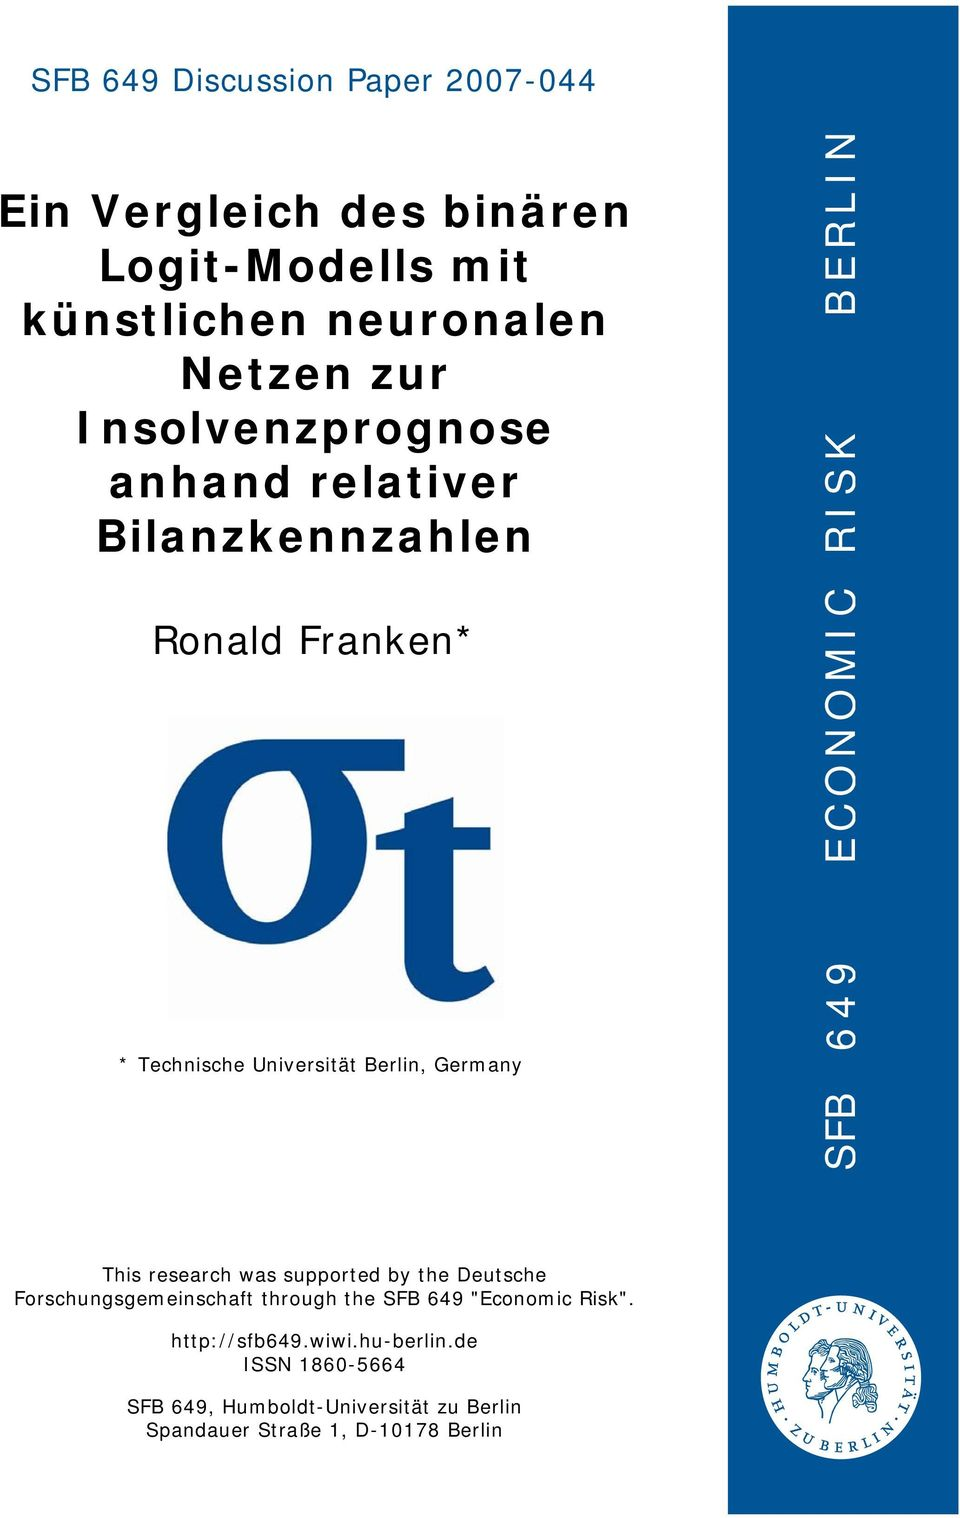 O N O M I C R I S K B E R L I N This research was supported by the Deutsche Forschungsgemeinschaft through the SFB 649